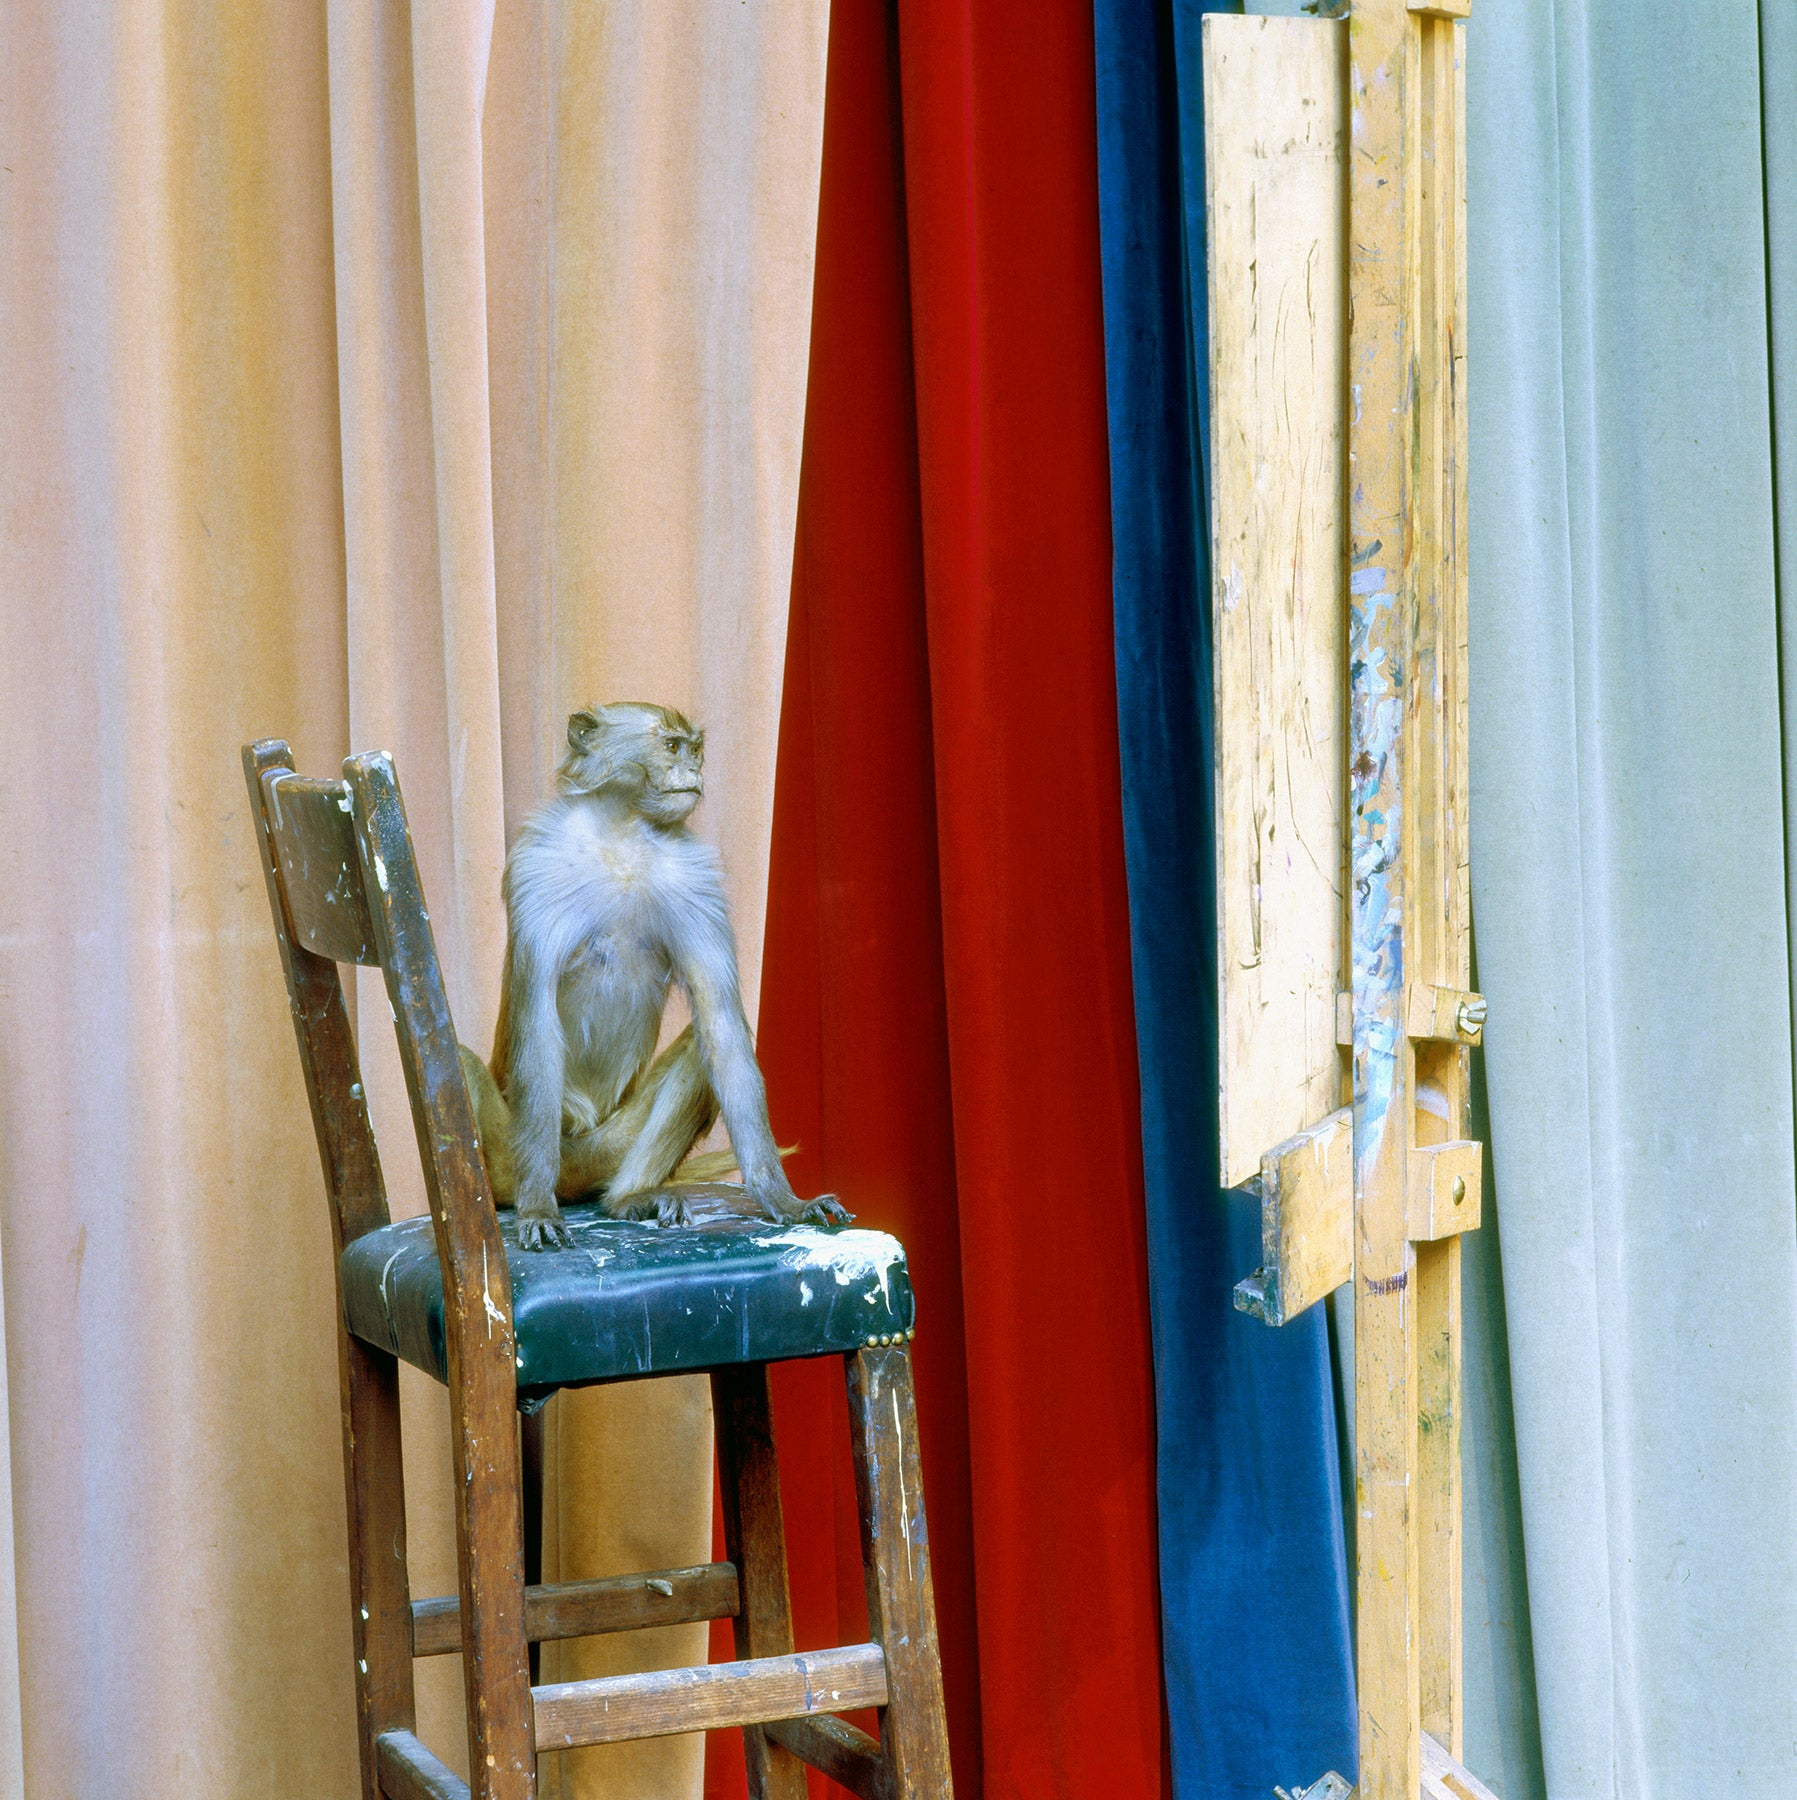 Painting after Nature/ Life Room/ Academies photographic print by Karen Knorr